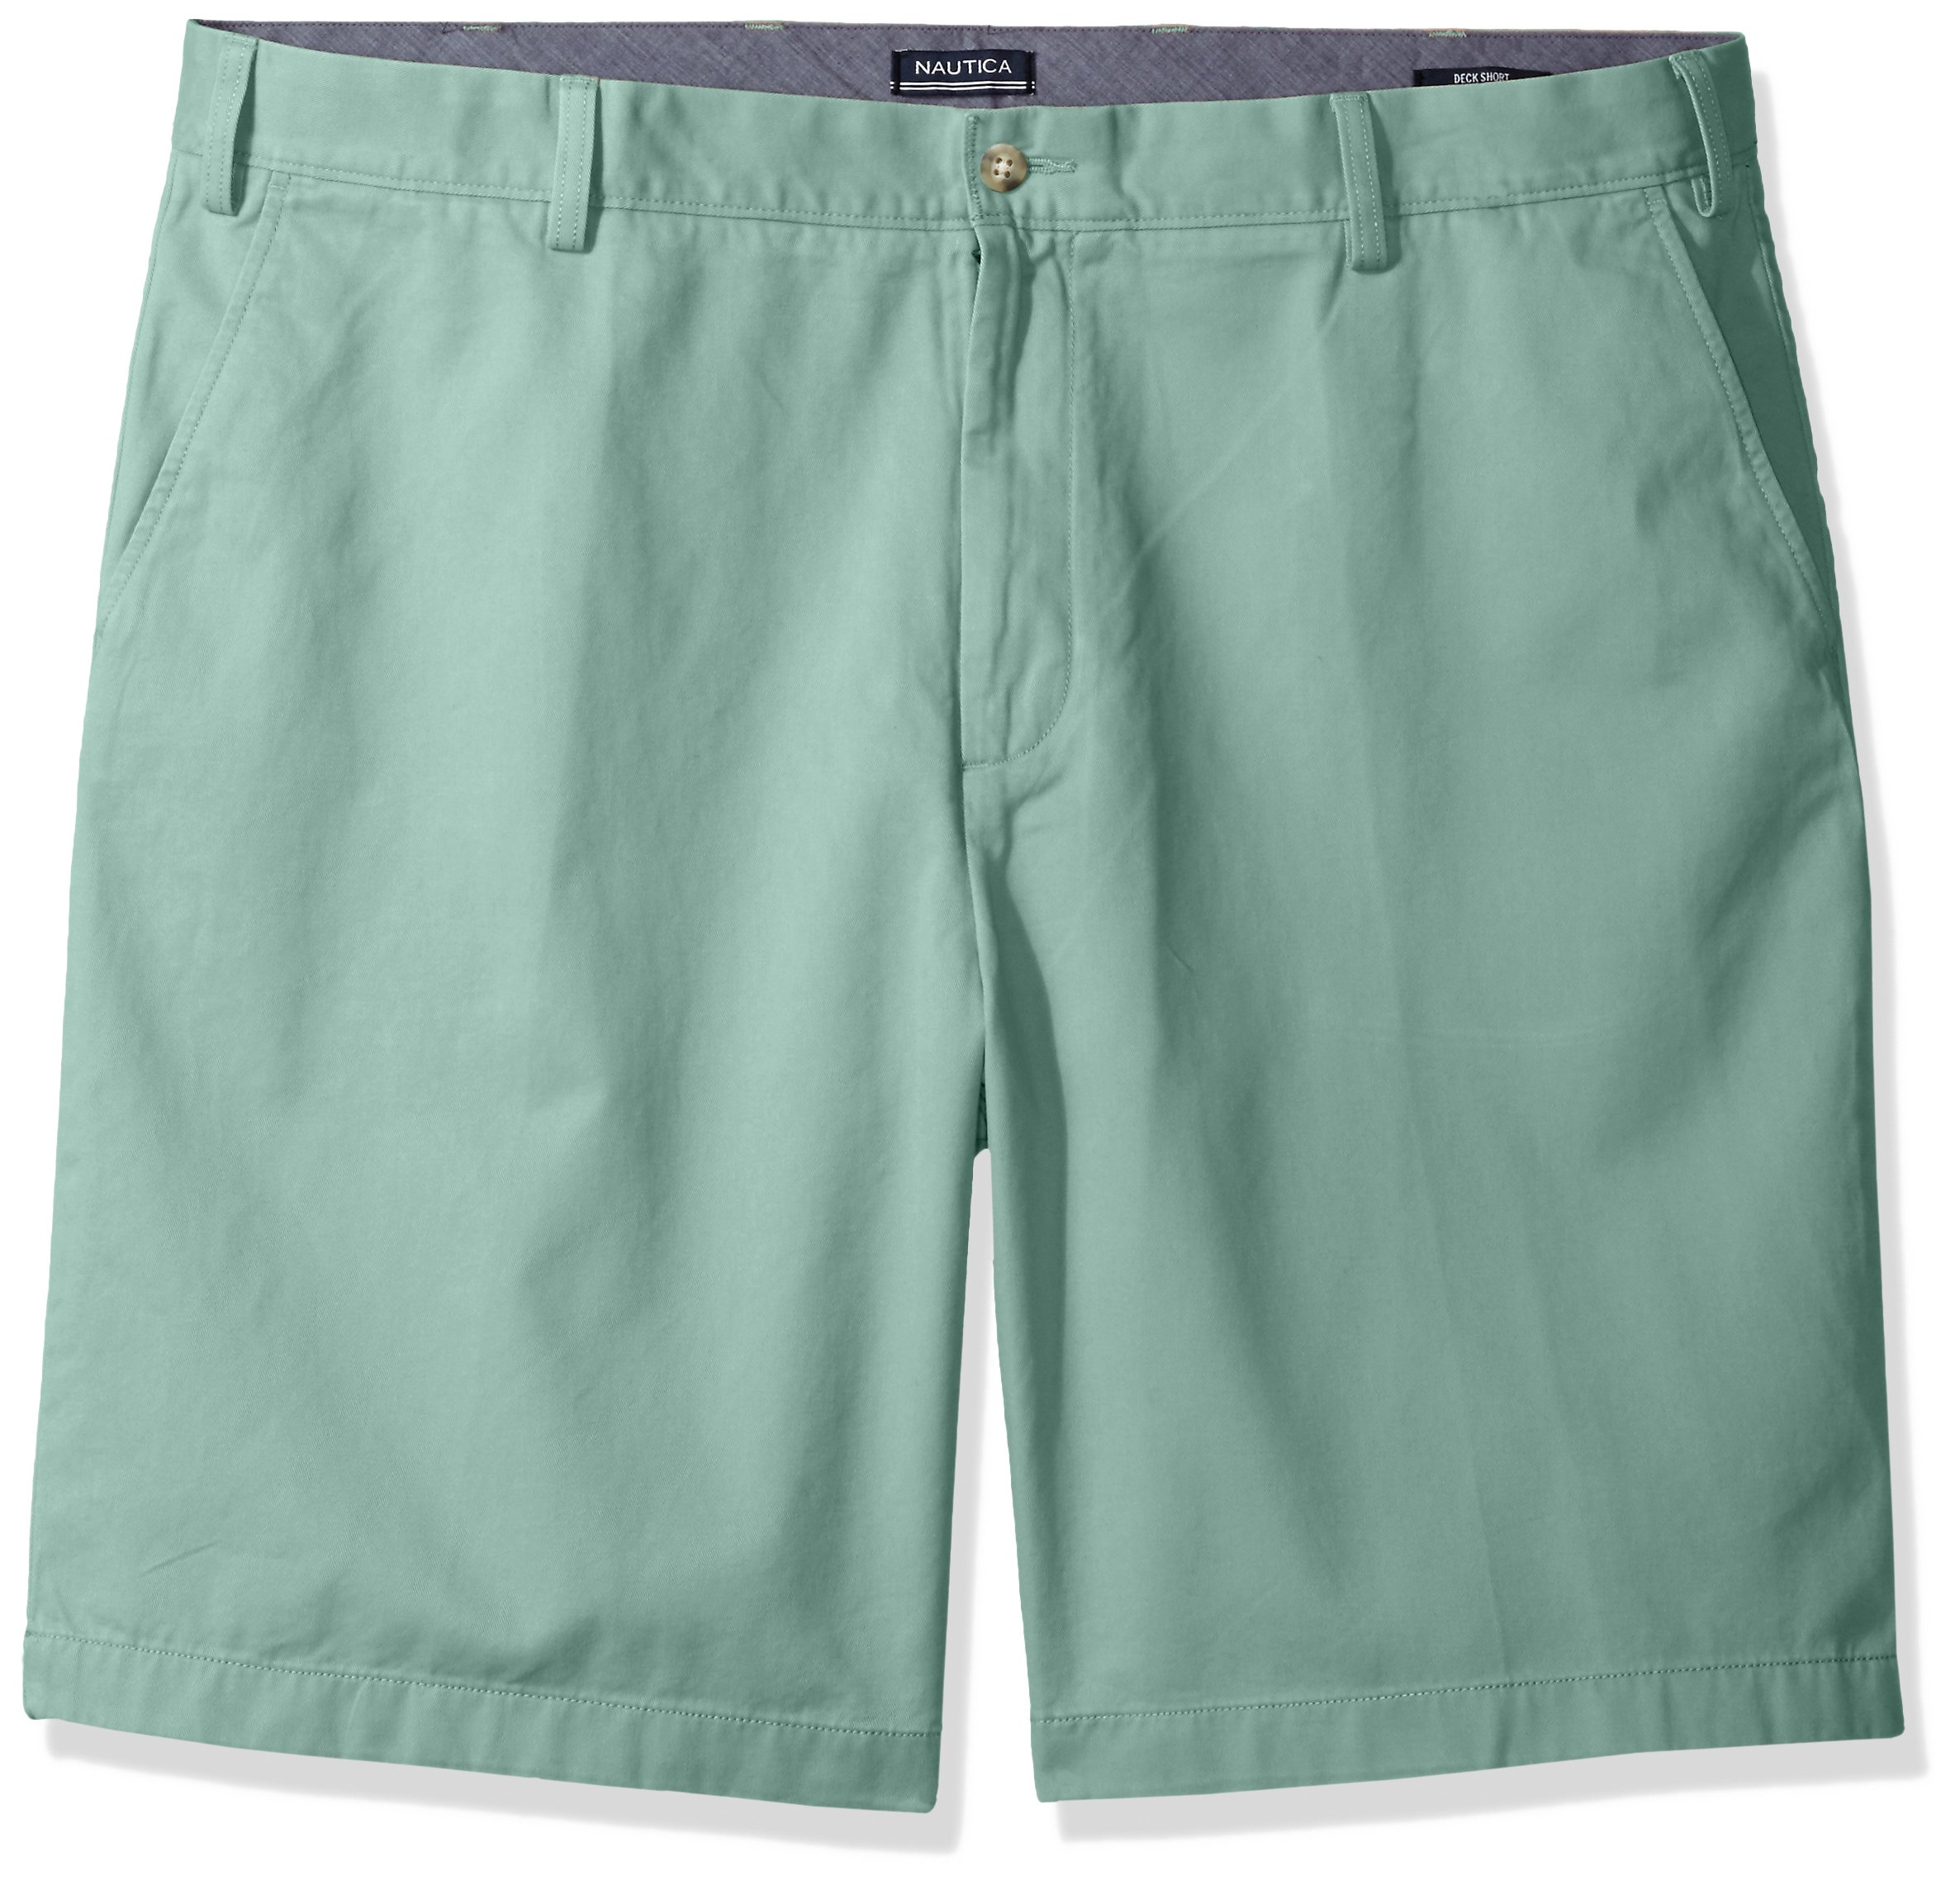 Nautica Men's Big and Tall Cotton Twill Flat Front Chino Deck Short-C92110, Fin Green 48W